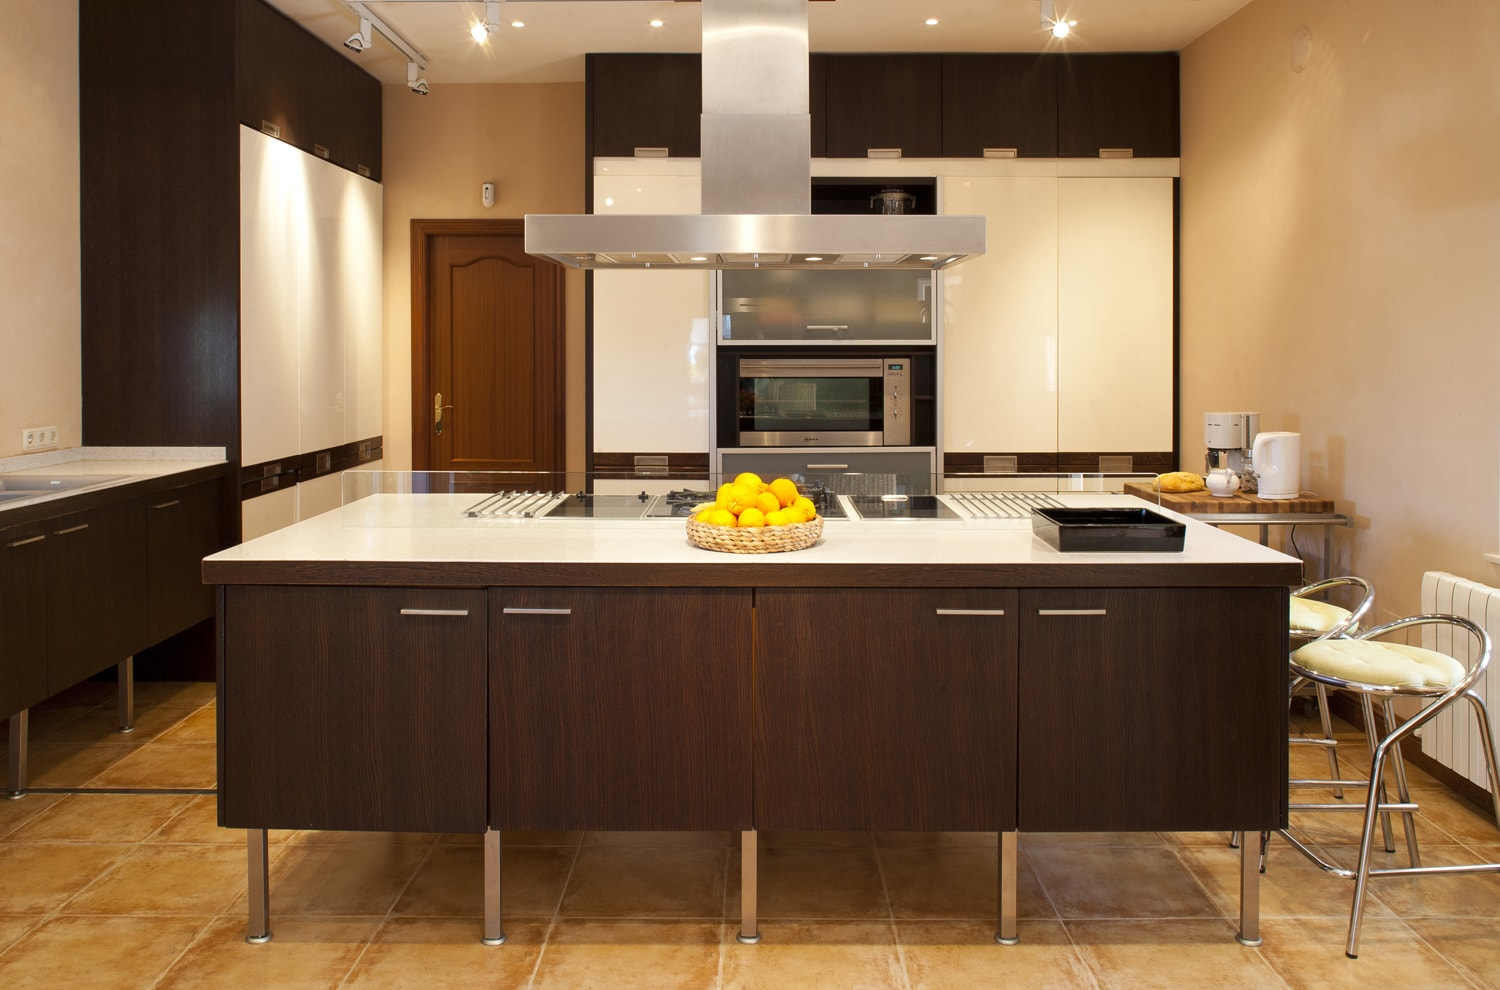 luxury kitchen villas andalucia